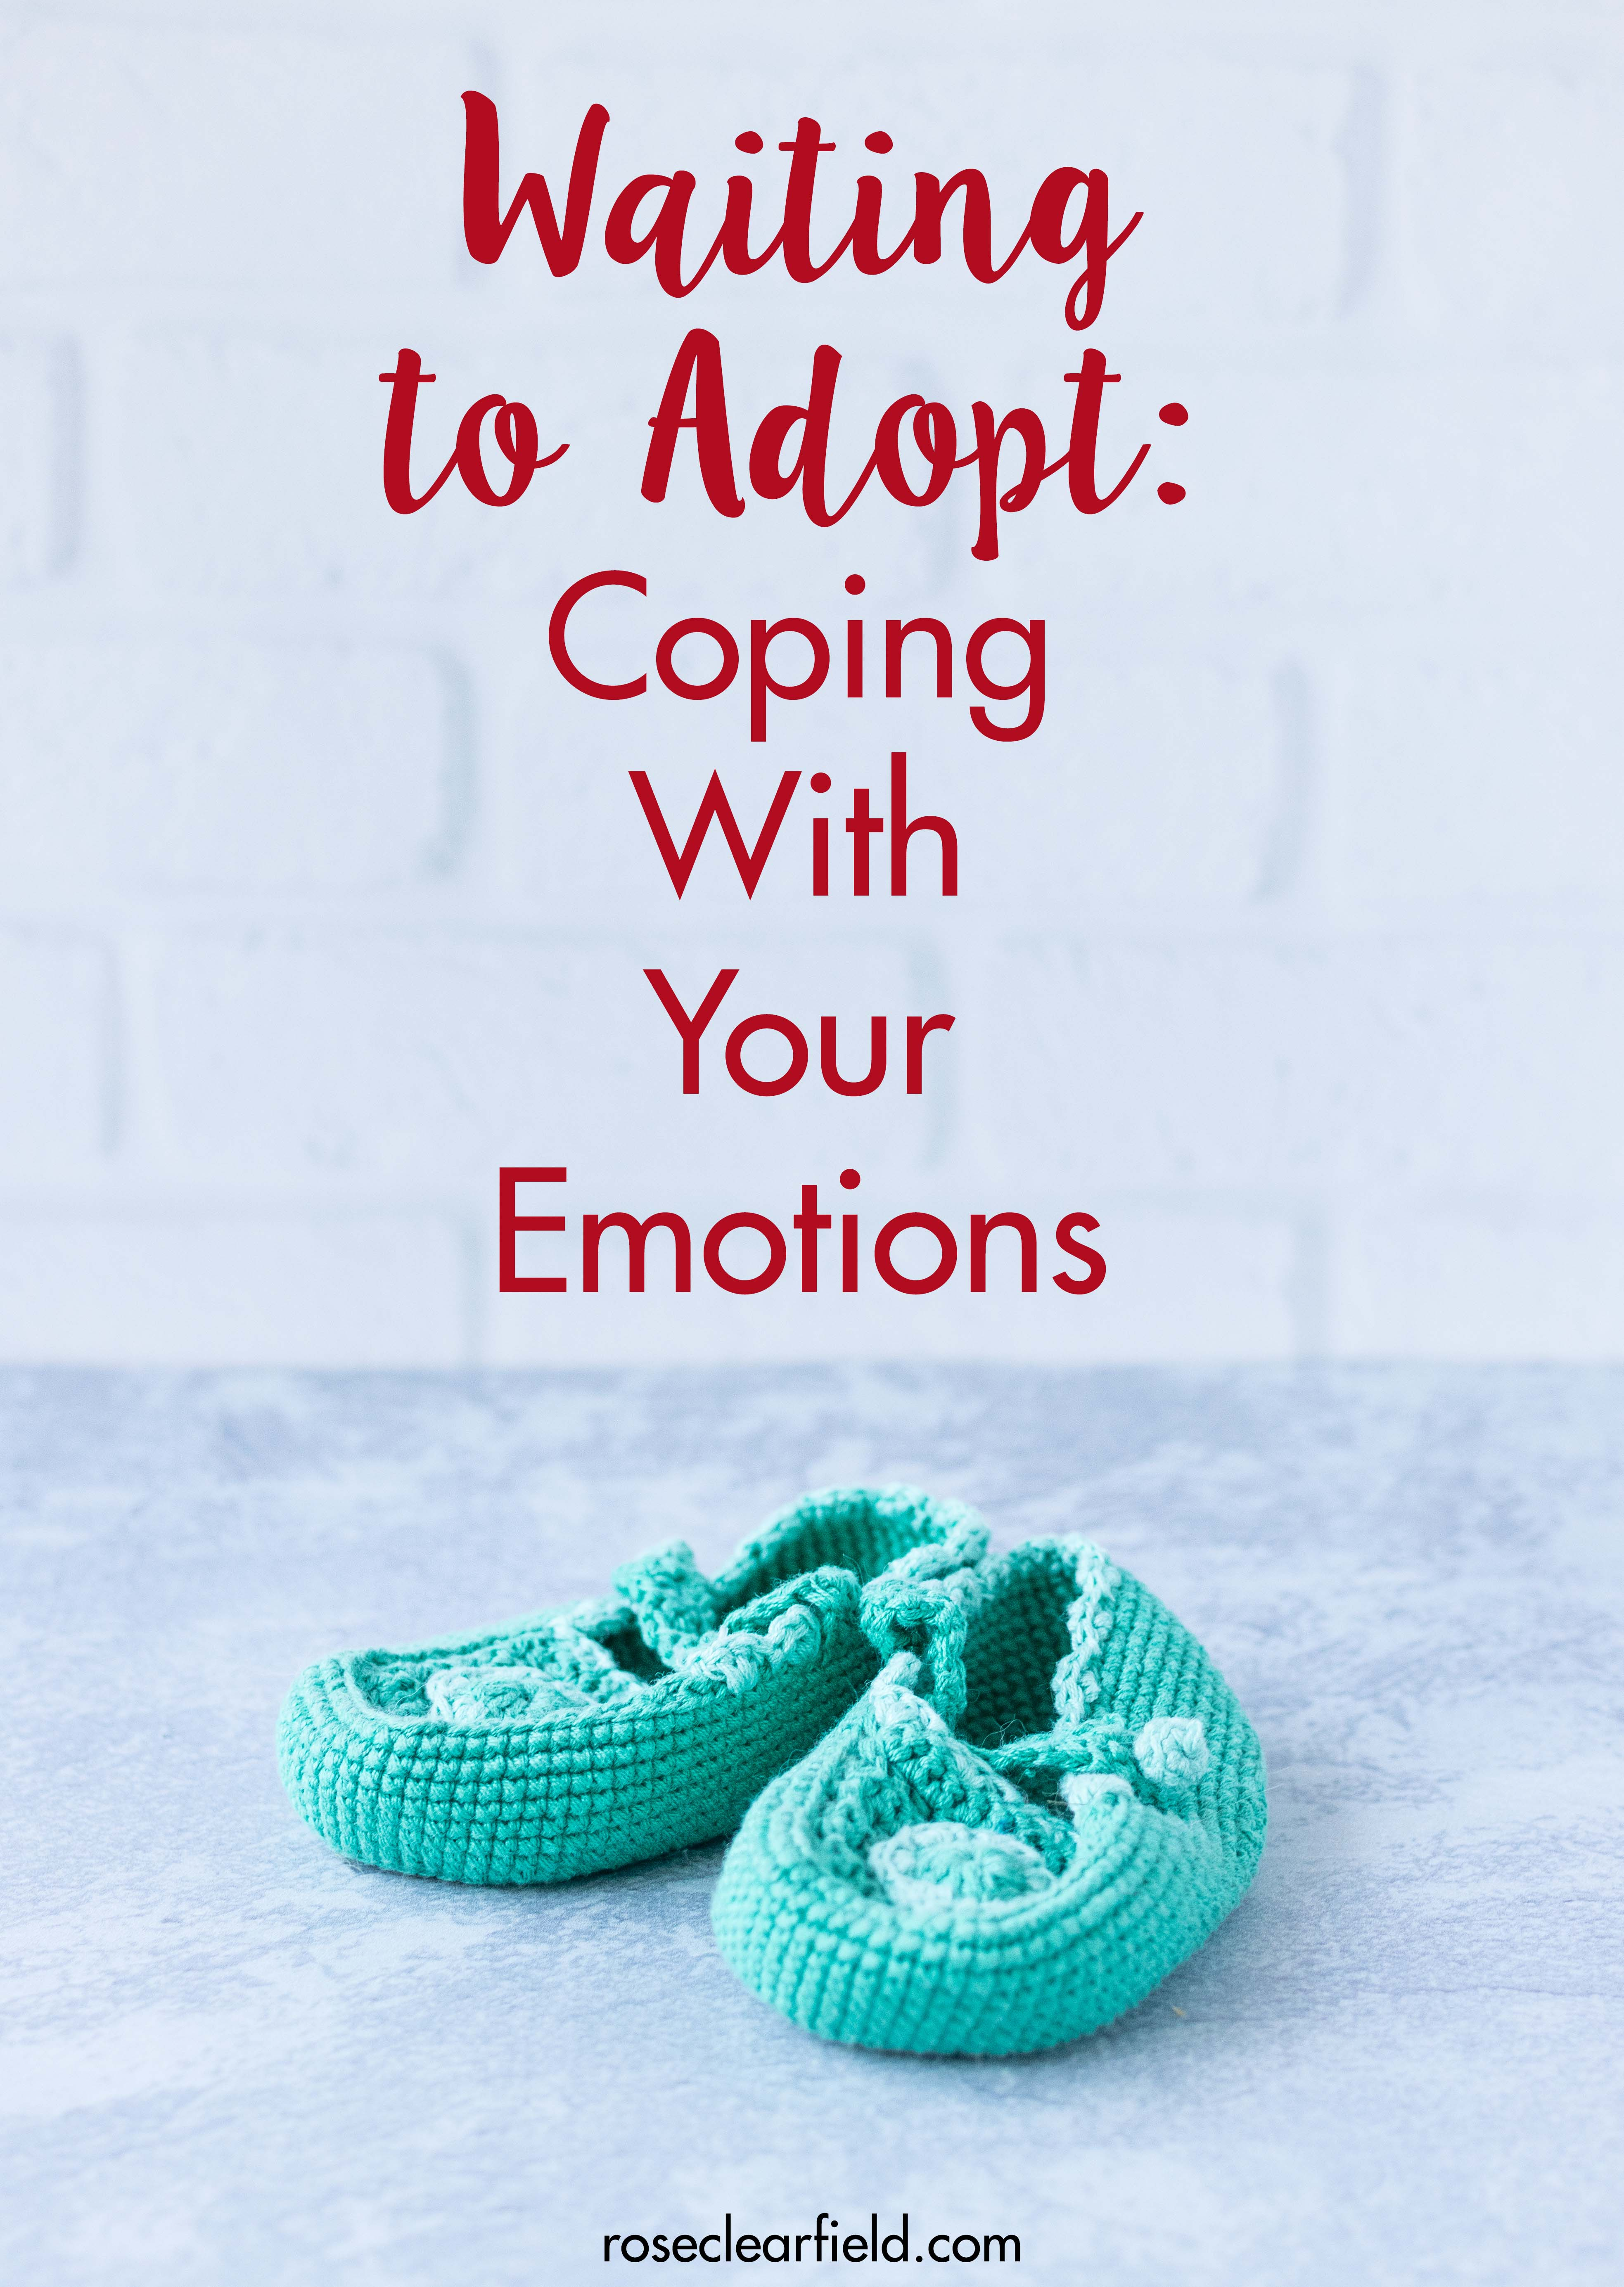 Coping with your emotions is critical for surviving the adoption wait. I cover tactics for facing jealousy, restlessness, guilt, resentment, grief, and anger. #adoption #adoptionwait #waitingtoadopt #theadoptionwait | https://www.roseclearfield.com